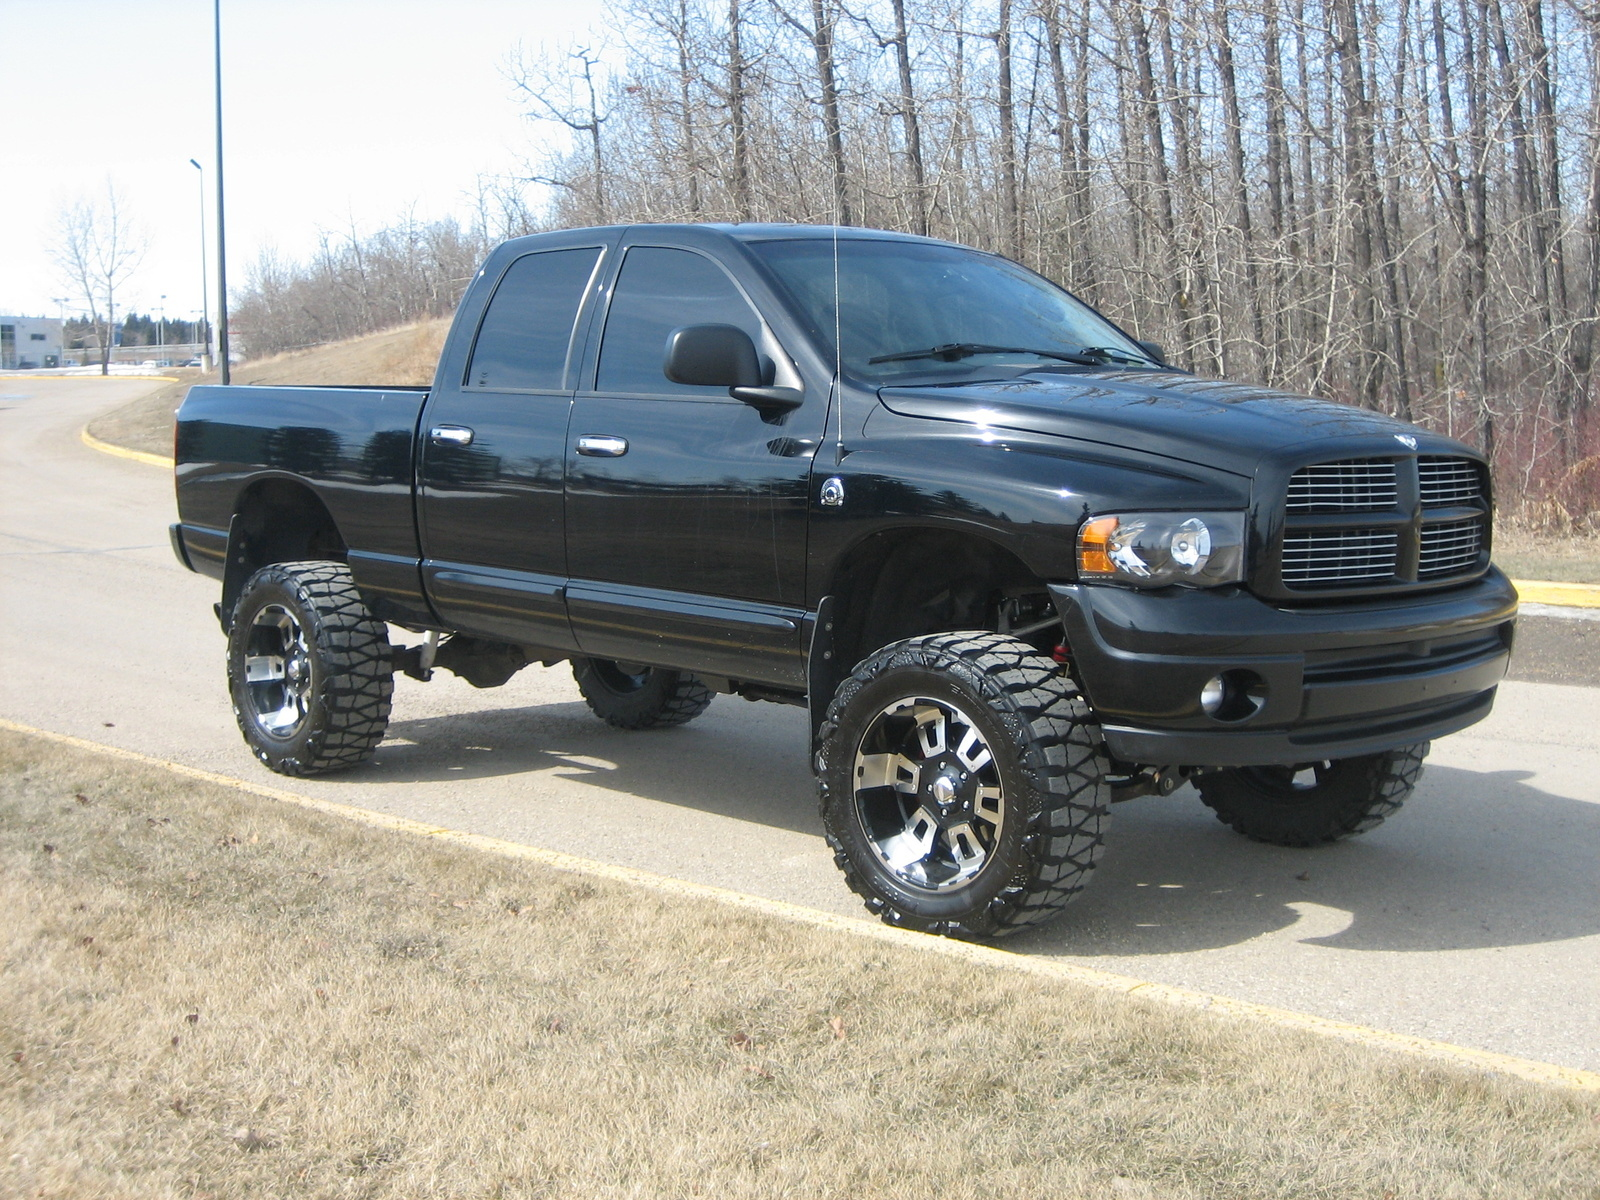 K Ta additionally  further C Aabaeb C F B A Dcea Dodge Ram Sport Dodge Ram furthermore Dodgeram Lifted L Ea C E B besides Pic X. on 2004 dodge ram 2500 hemi lifted